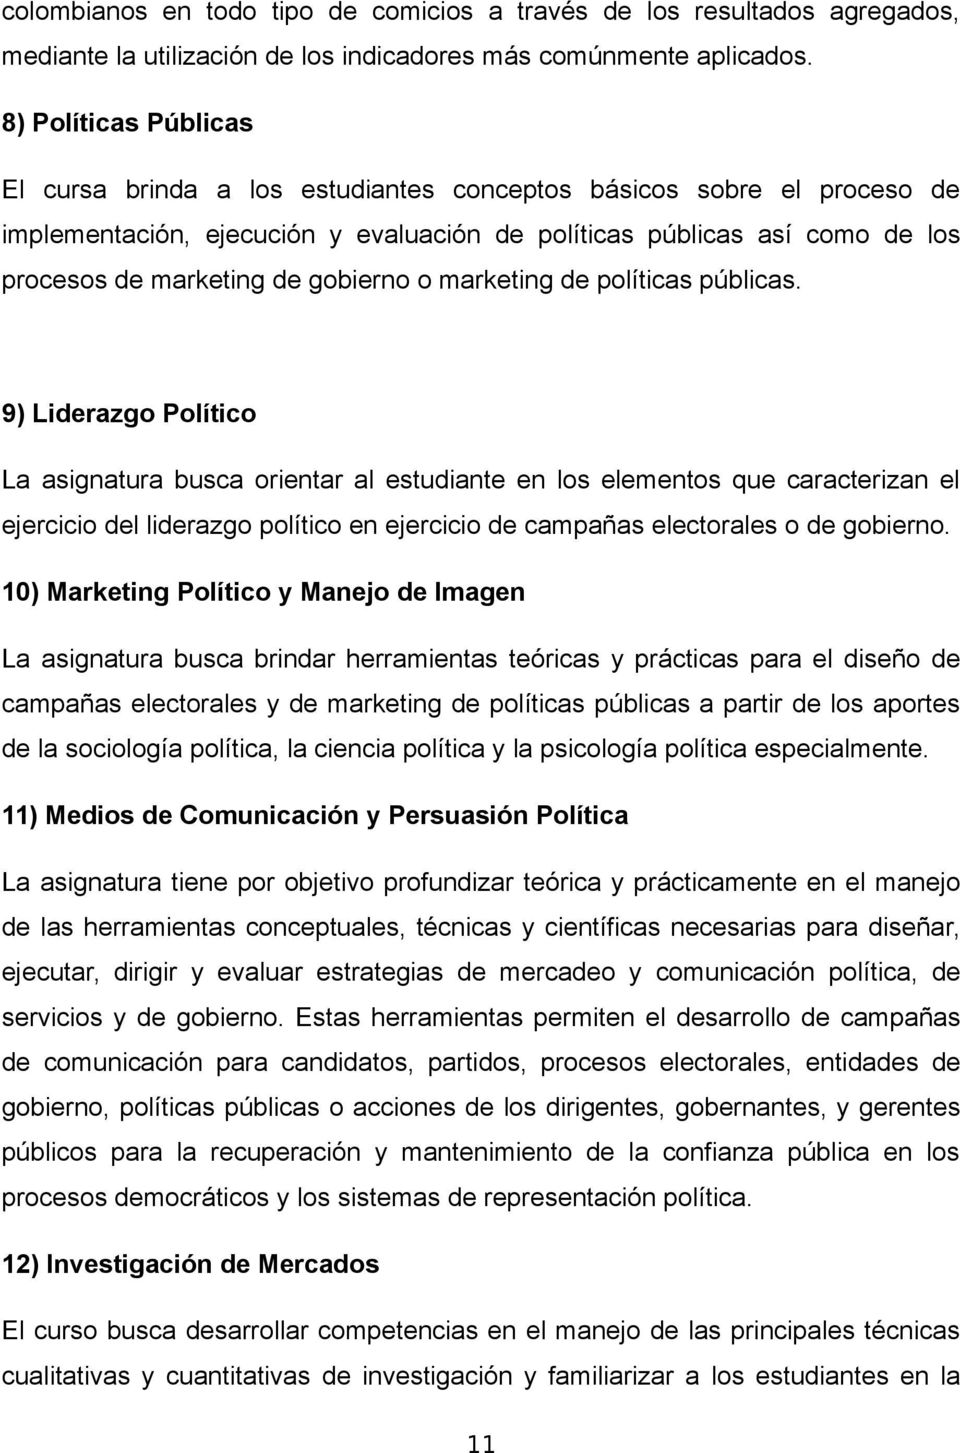 gobierno o marketing de políticas públicas.